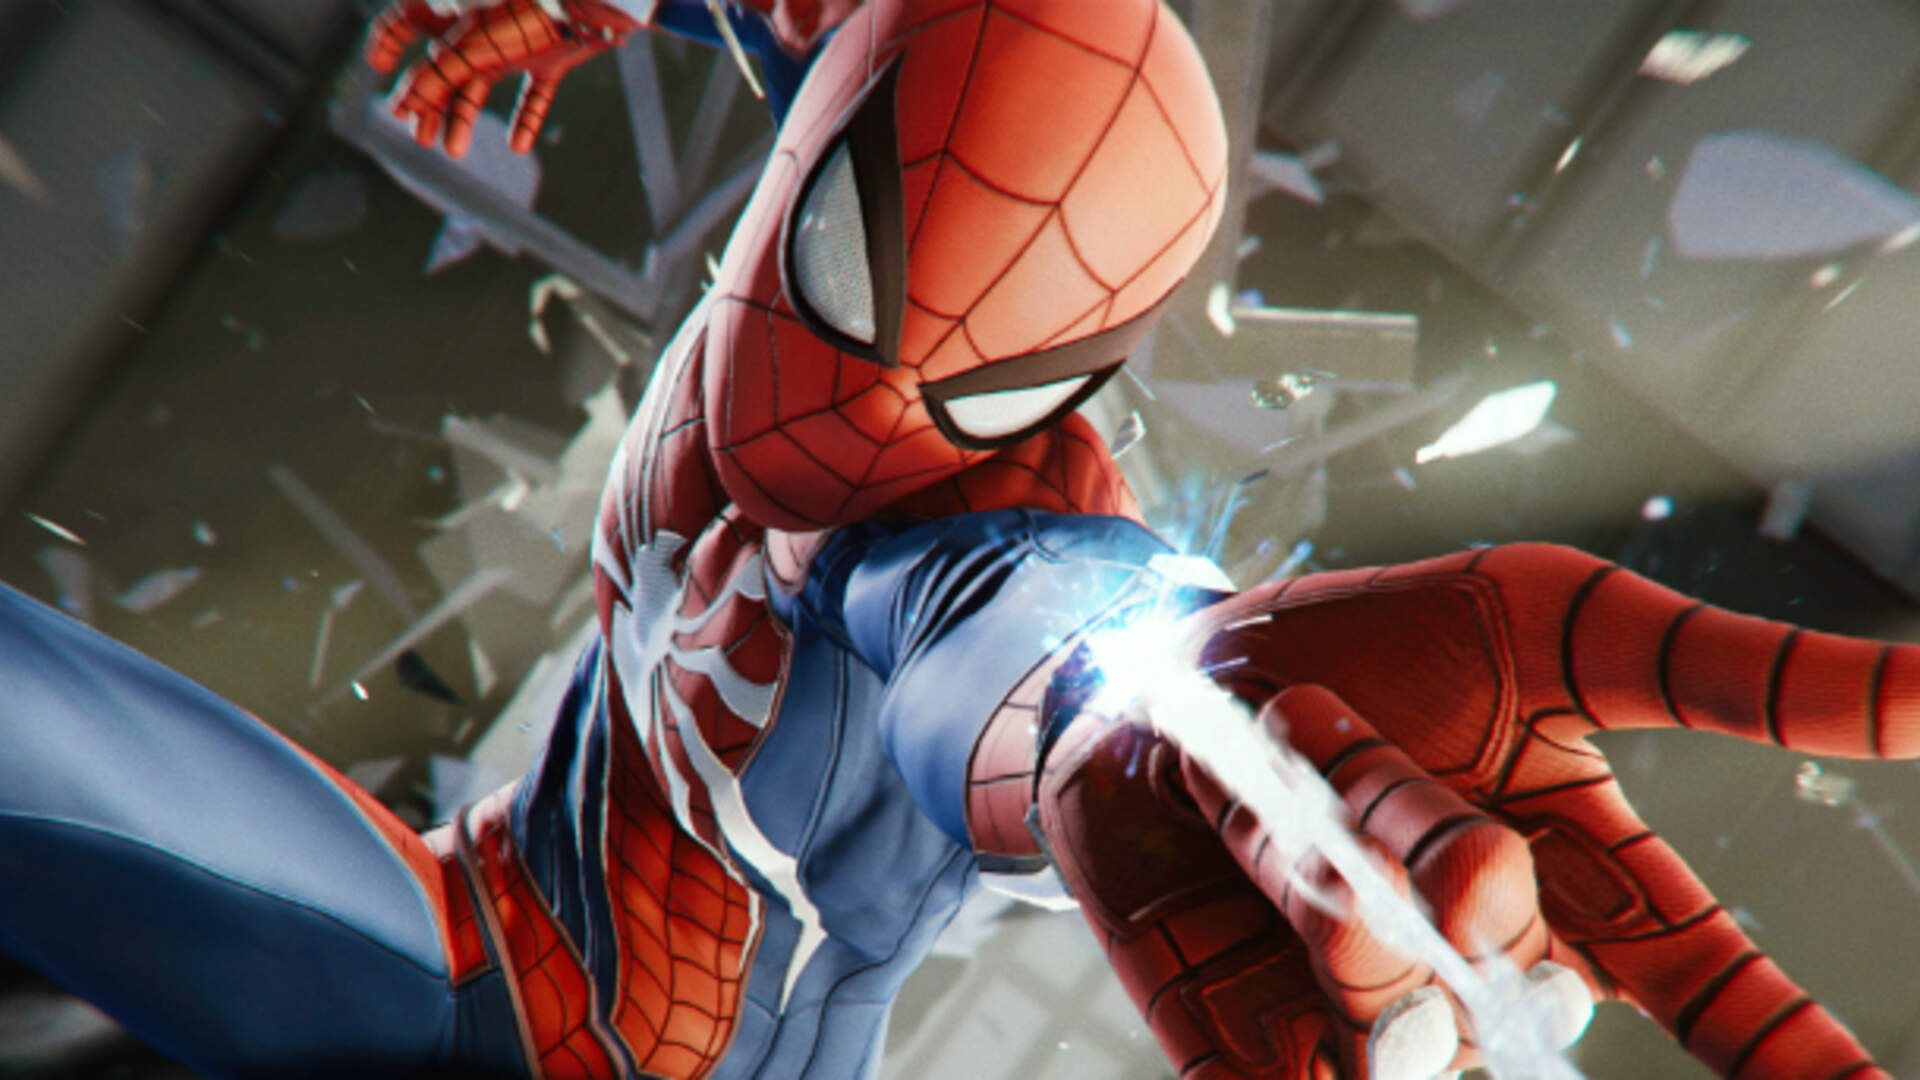 Spider-Man PS4 In-Depth Hands-On: Peter and MJ, Agile Combat, Skill Trees, and Web-Swinging Tested